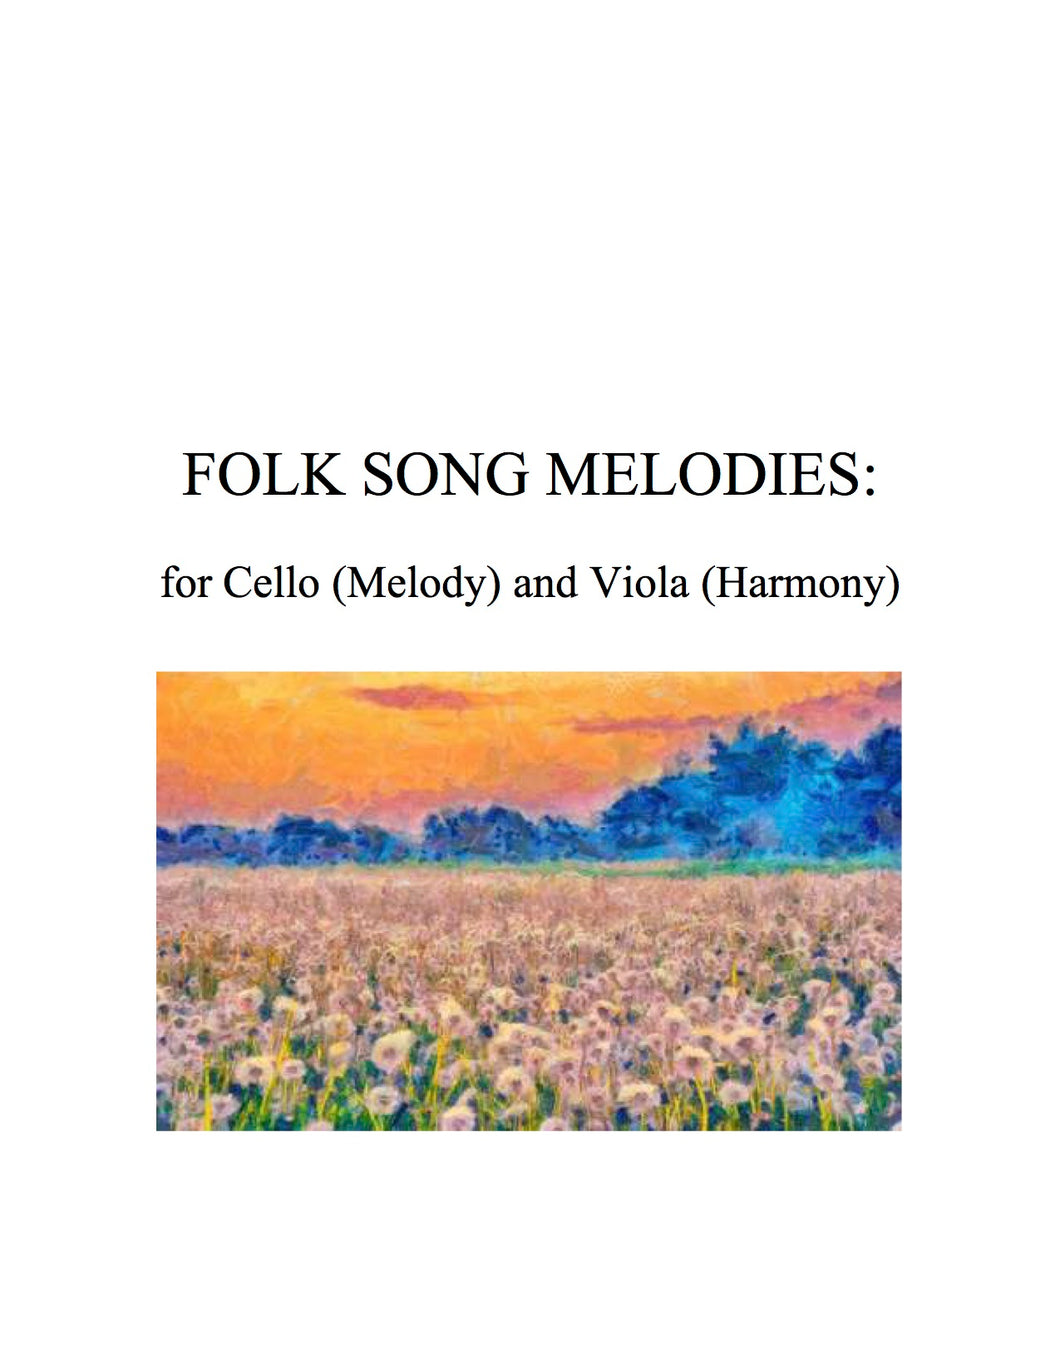 024 BUNDLE - Folk Song Melodies for Cello (Melody) and Viola (Harmony) Twinkle - Etude